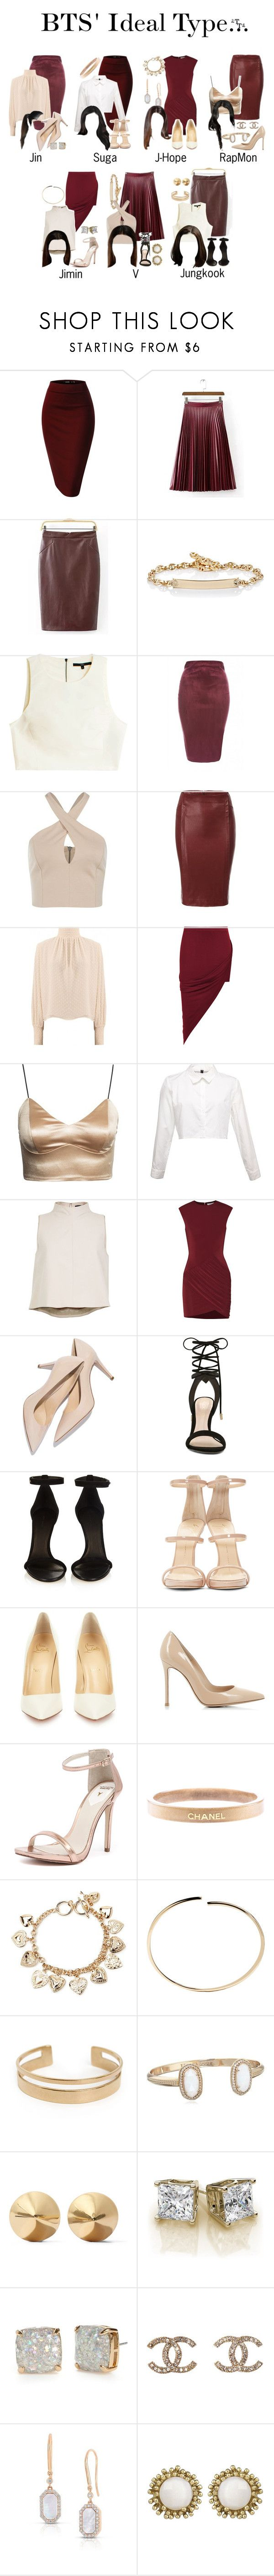 """BTS' ideal type attending an awards show with them"" by triple-threat36 ❤ liked on Polyvore featuring Hoorsenbuhs, TIBI, AX Paris, WearAll, Elizabeth and James, ALDO, Isabel Marant, Giuseppe Zanotti, Christian Louboutin and Gianvito Rossi"